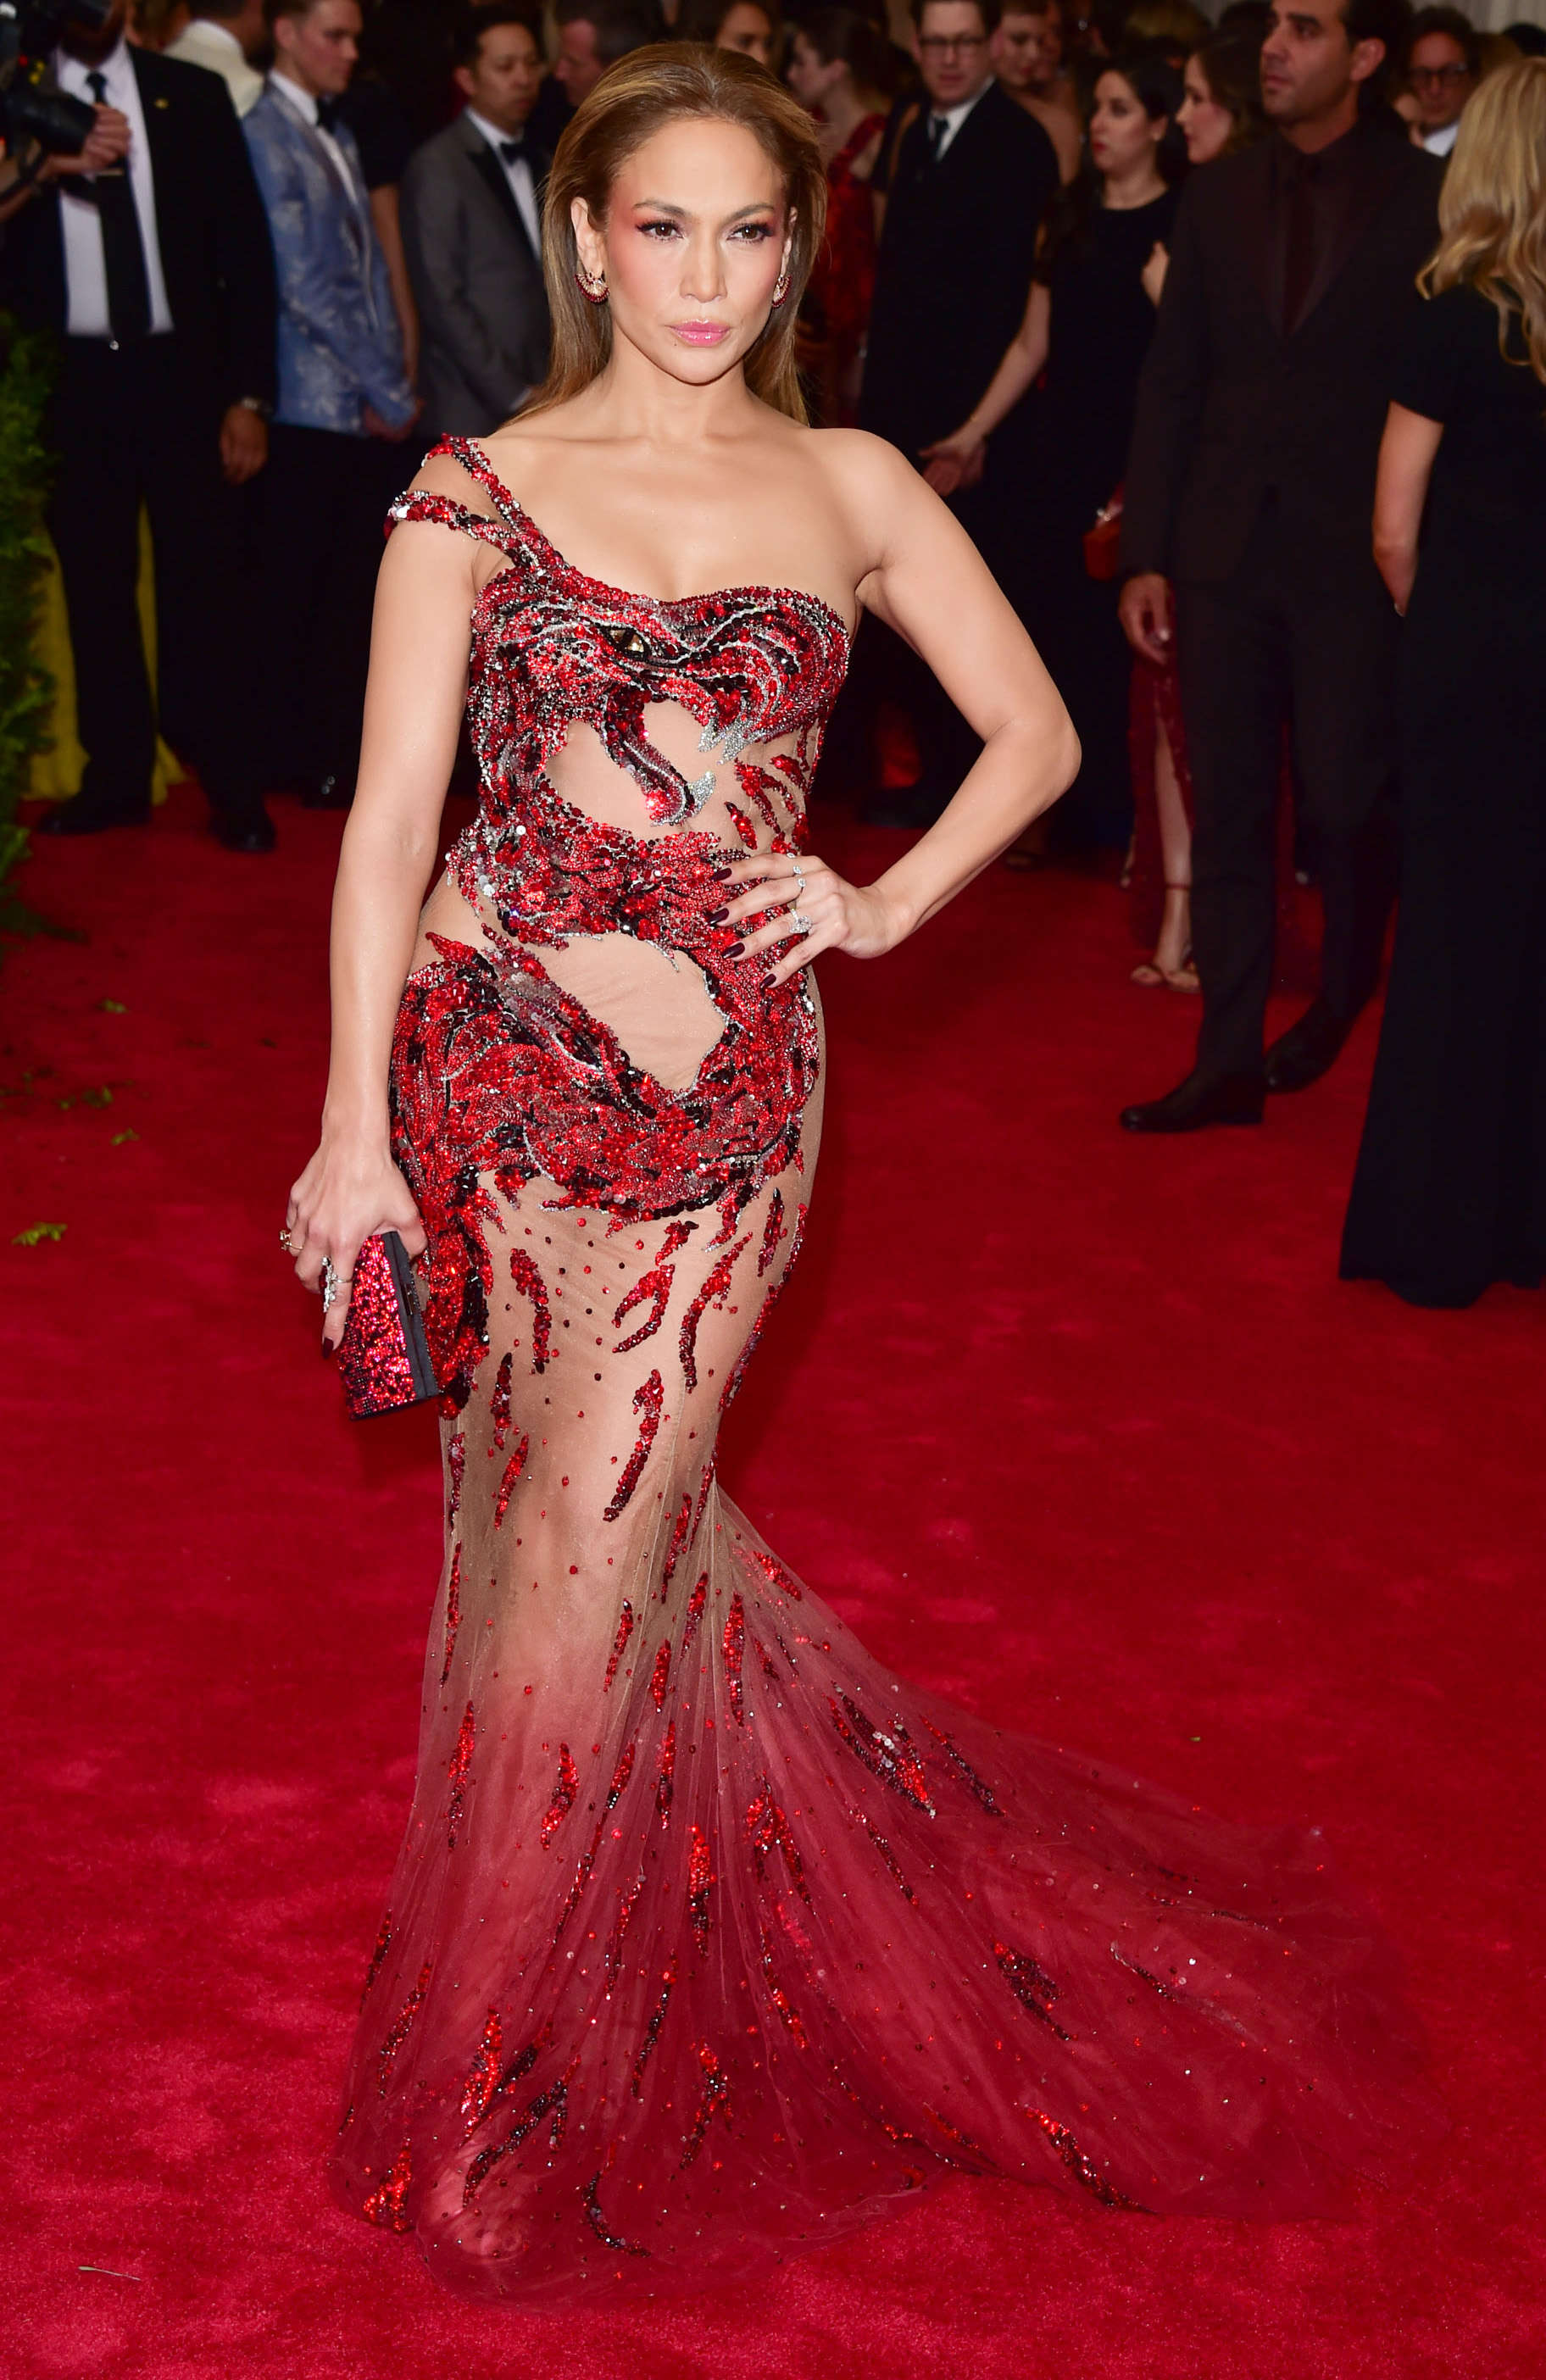 18 All Time Best Looks From The Met Gala Filmfare Com